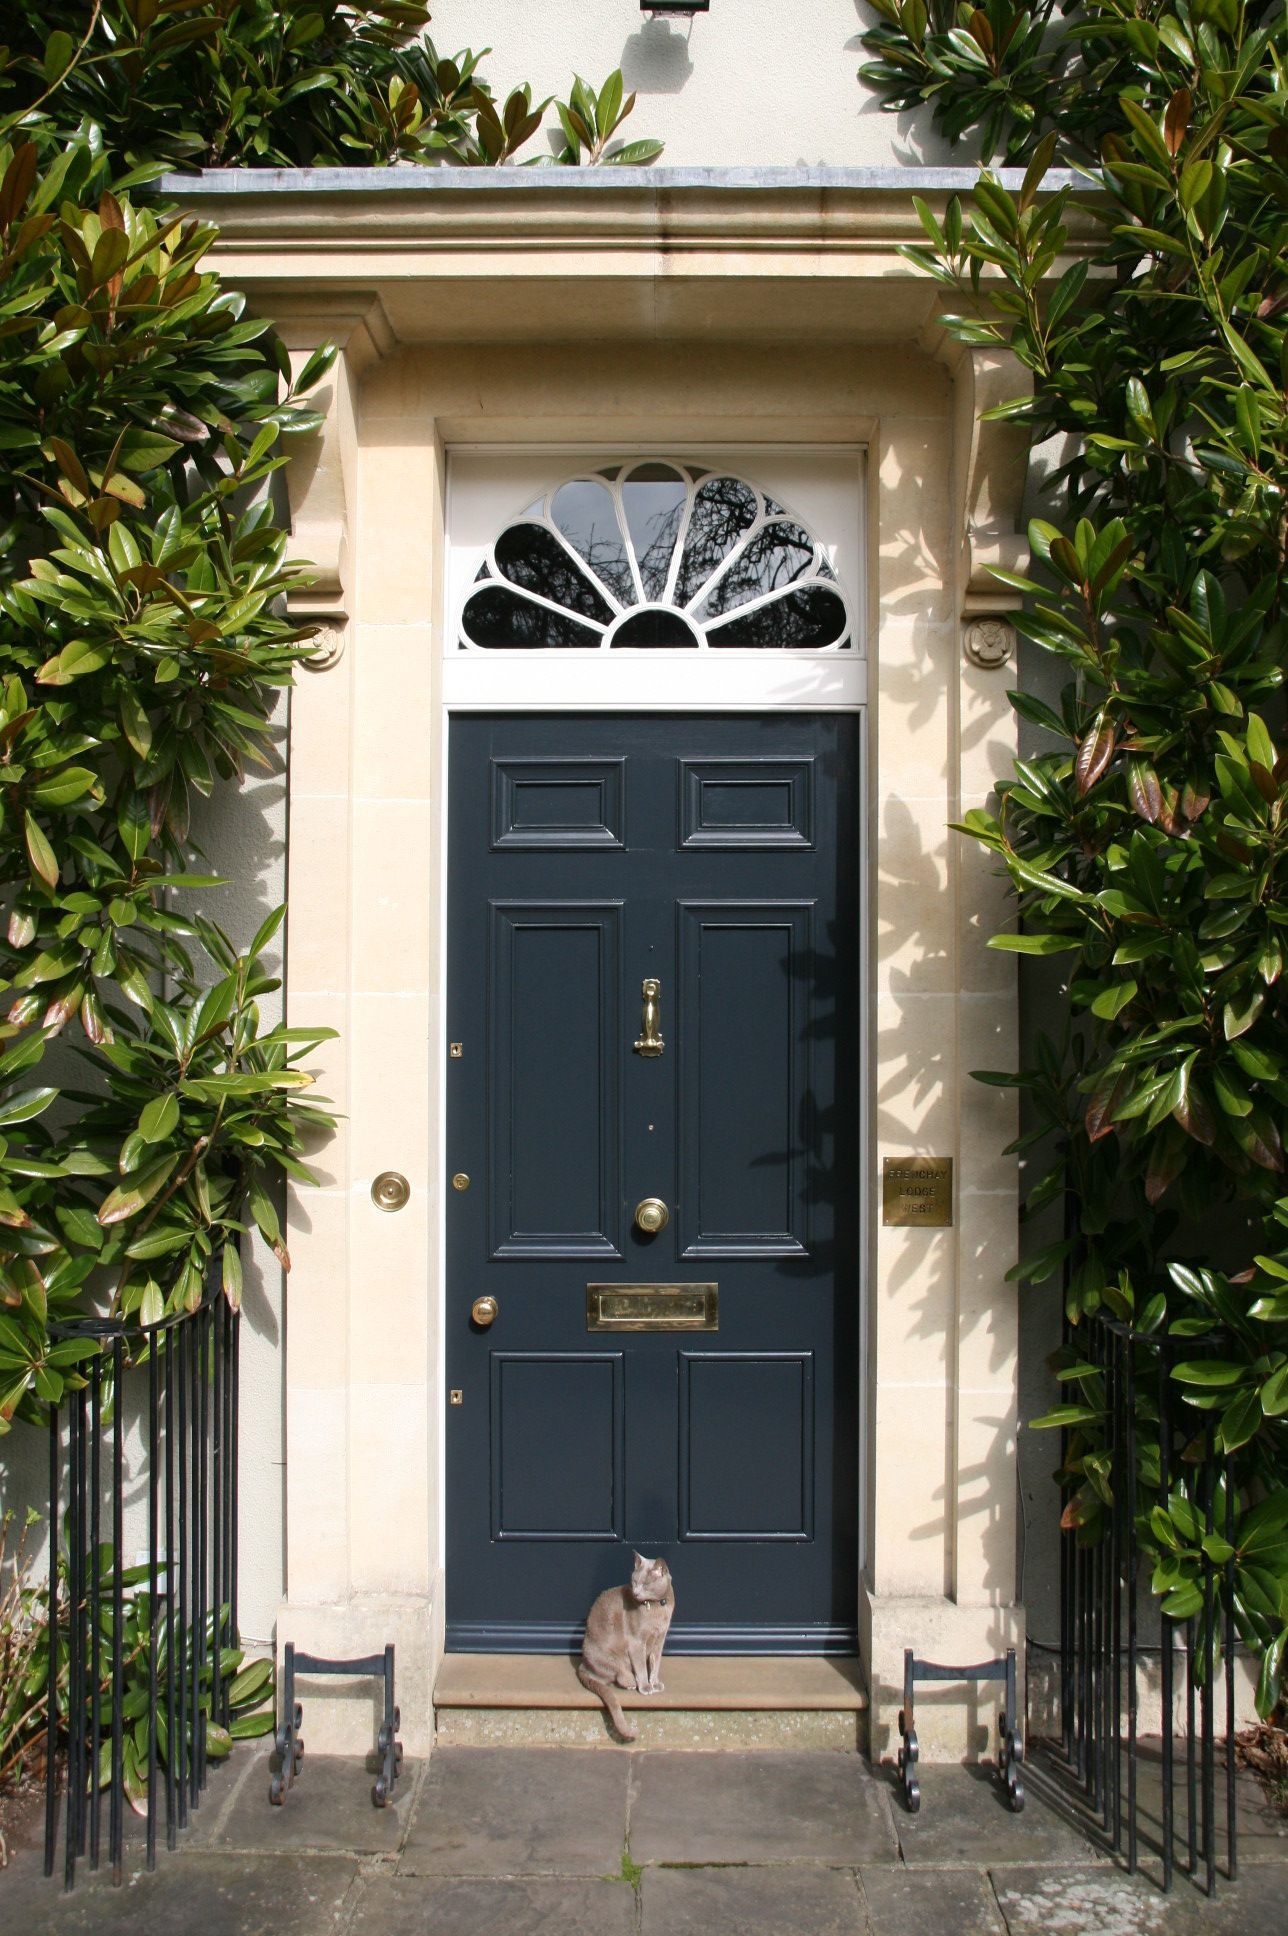 Farrow ball best exterior door colour gallery winning entry clare winsor uk railings no 31 - Exterior paint colours uk gallery ...